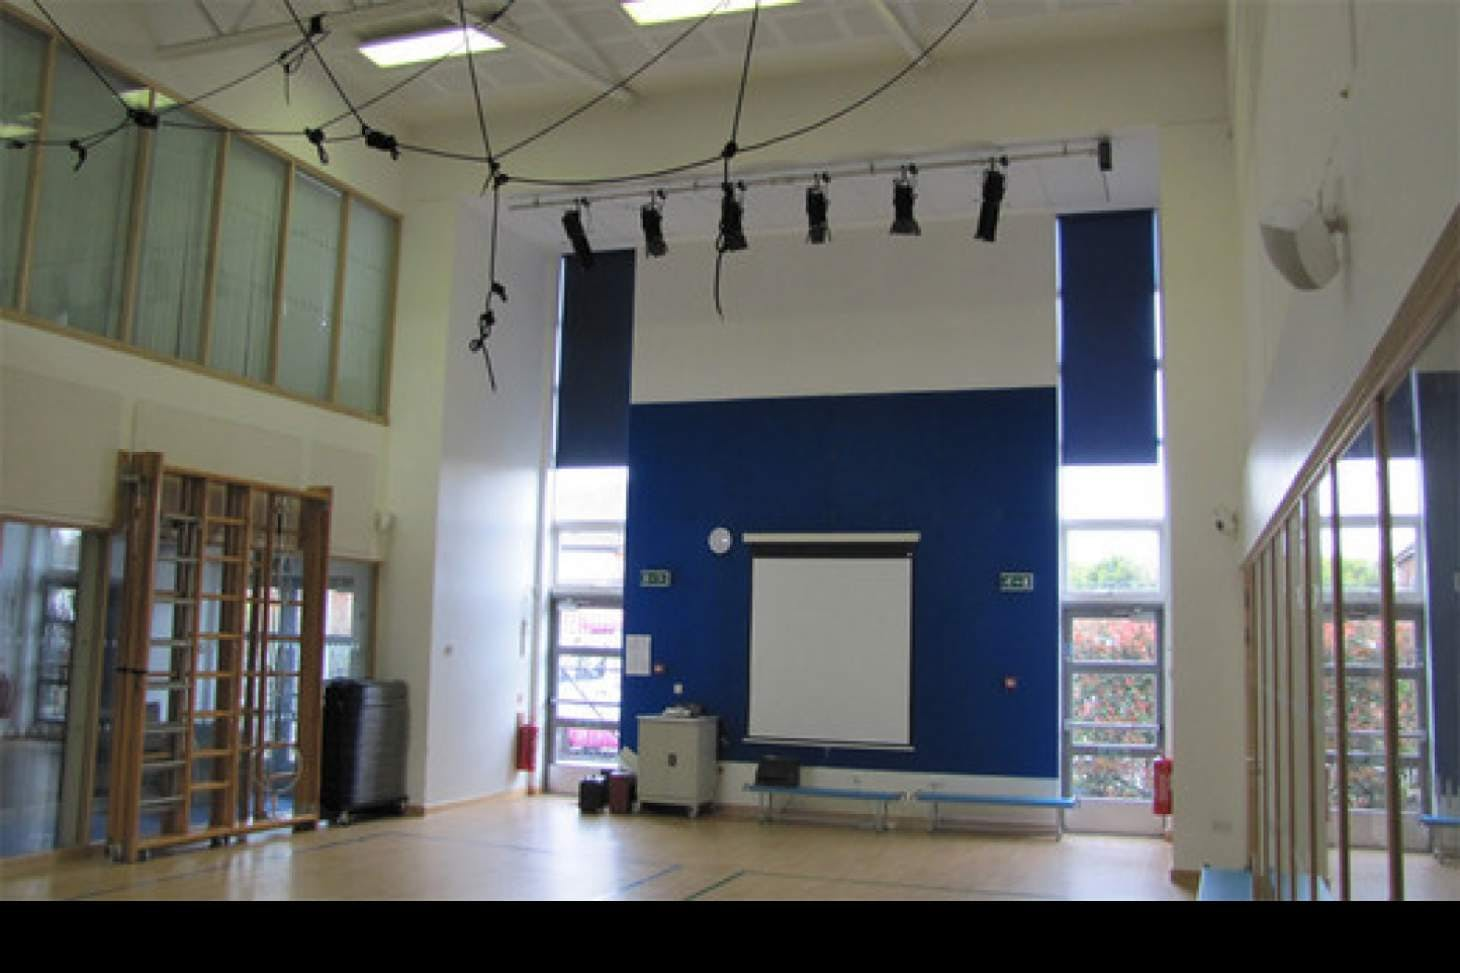 Wilbury Primary School Indoor netball court